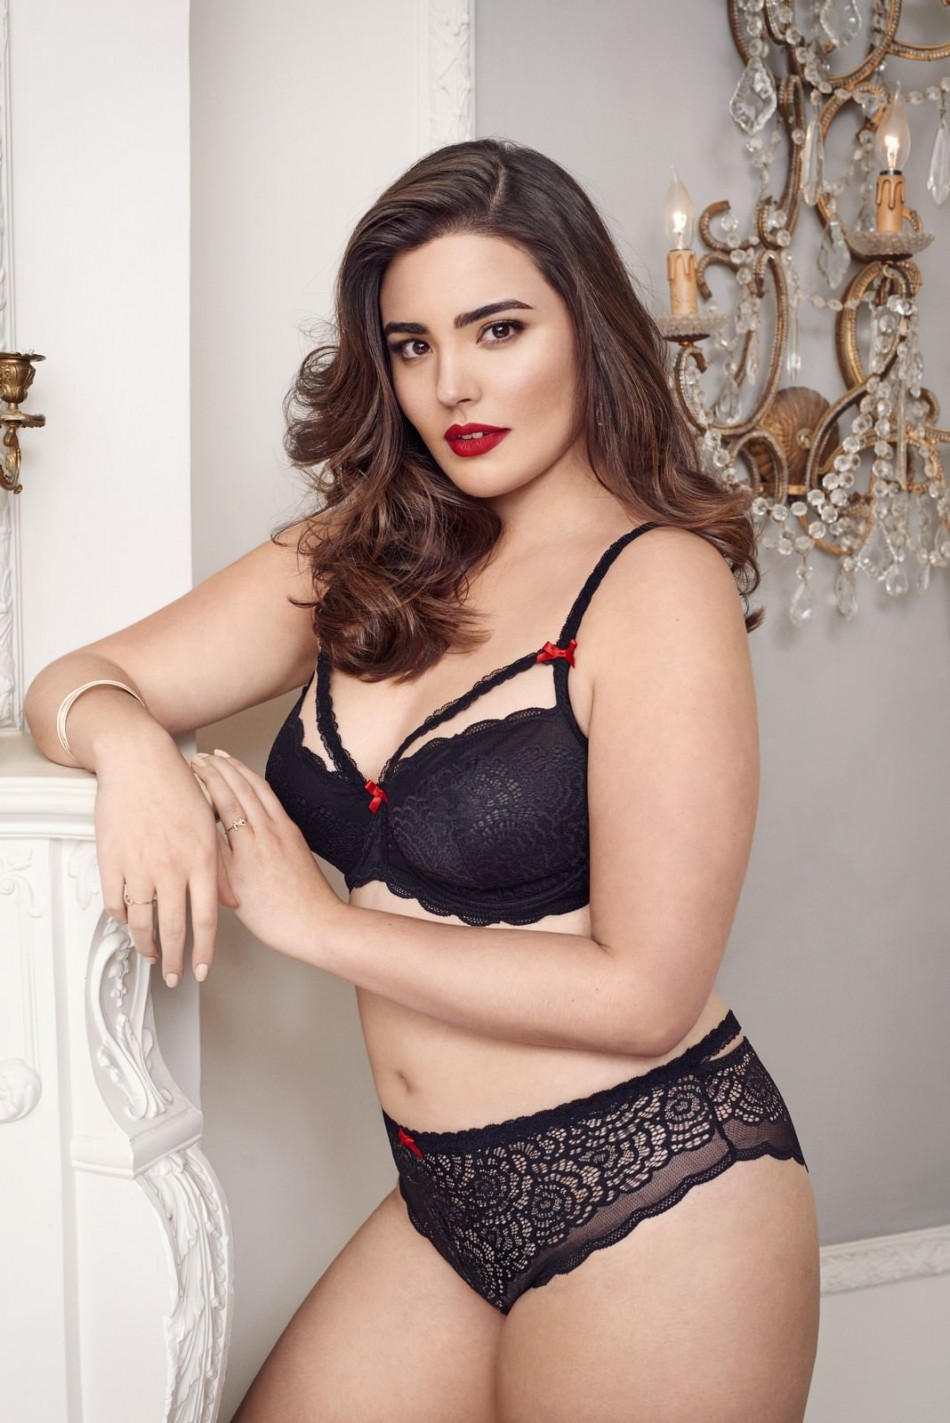 f36c64cff Alessandra sizzles in sultry plus-size lingerie campaign